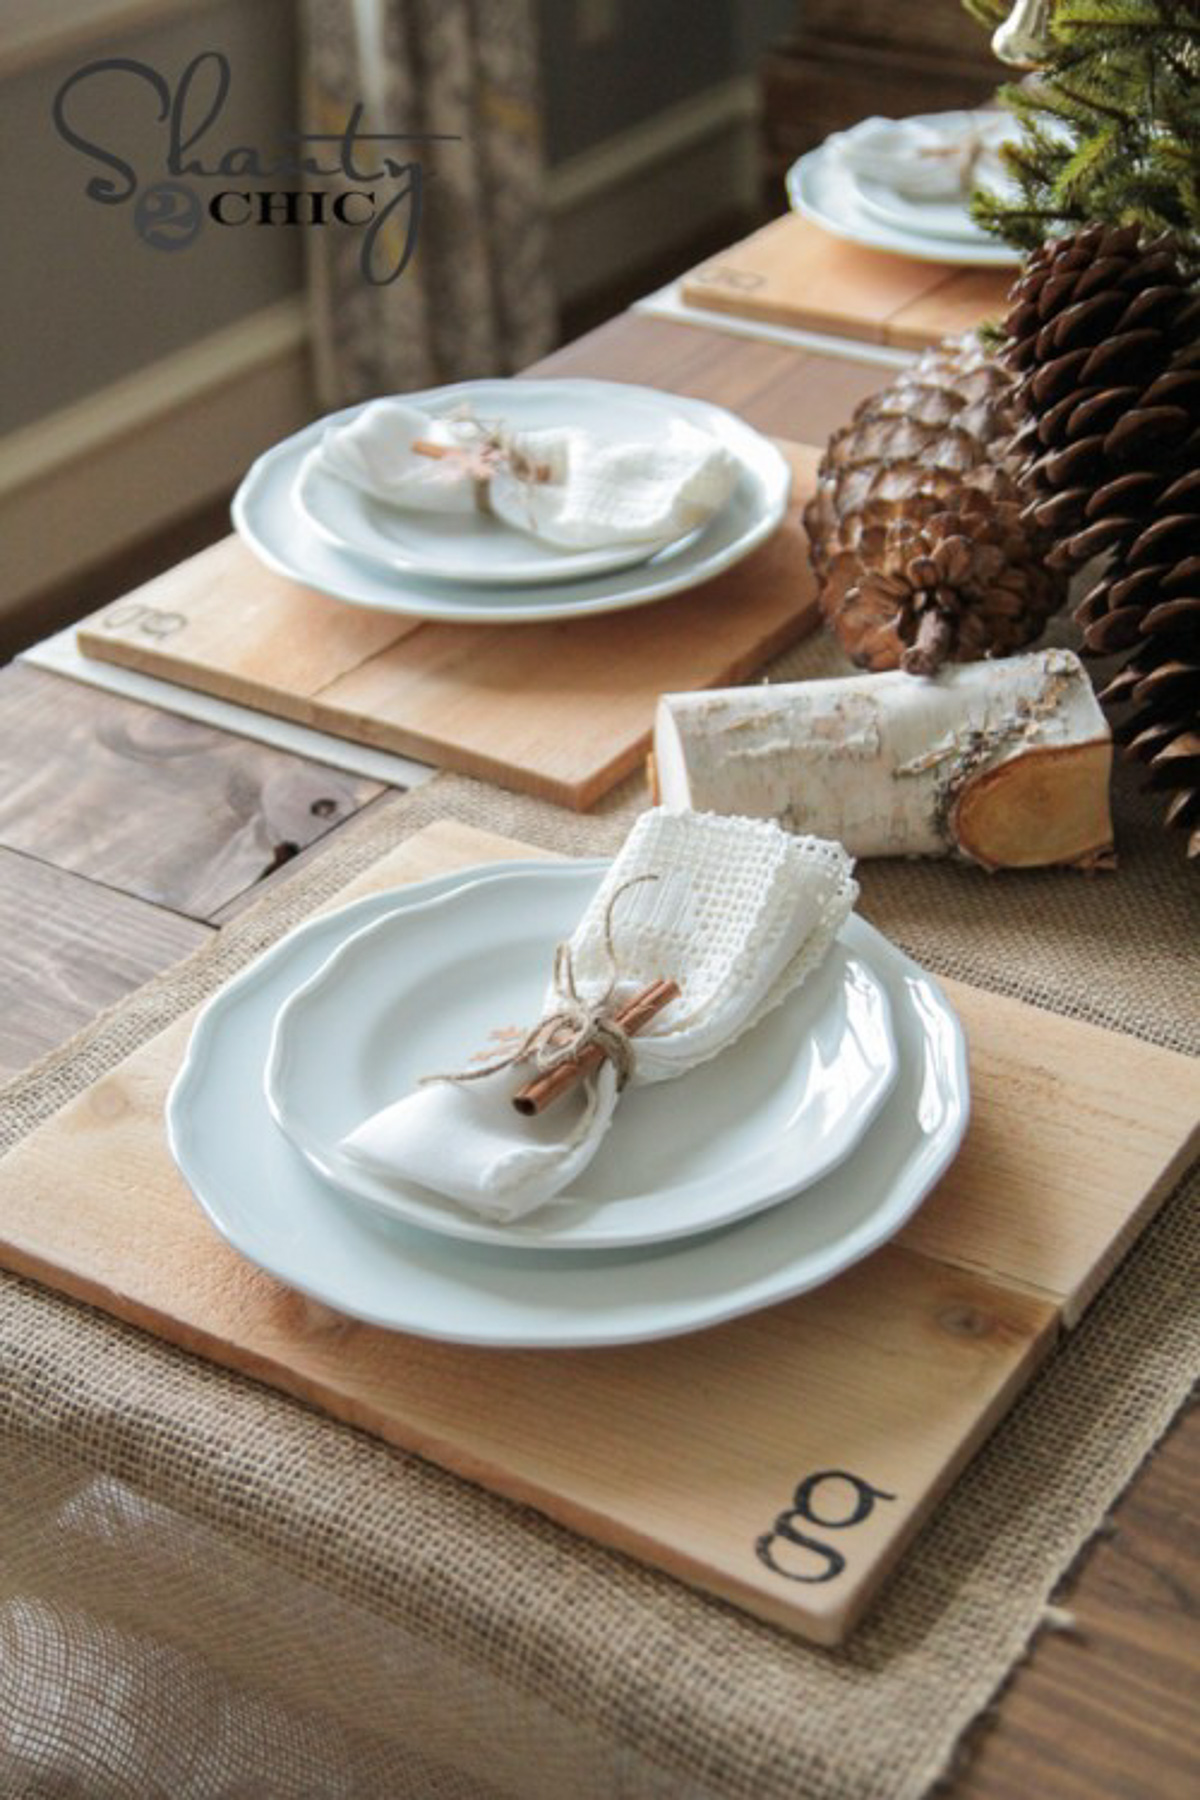 Transform Your Tablescape With These 20 Festive Settings